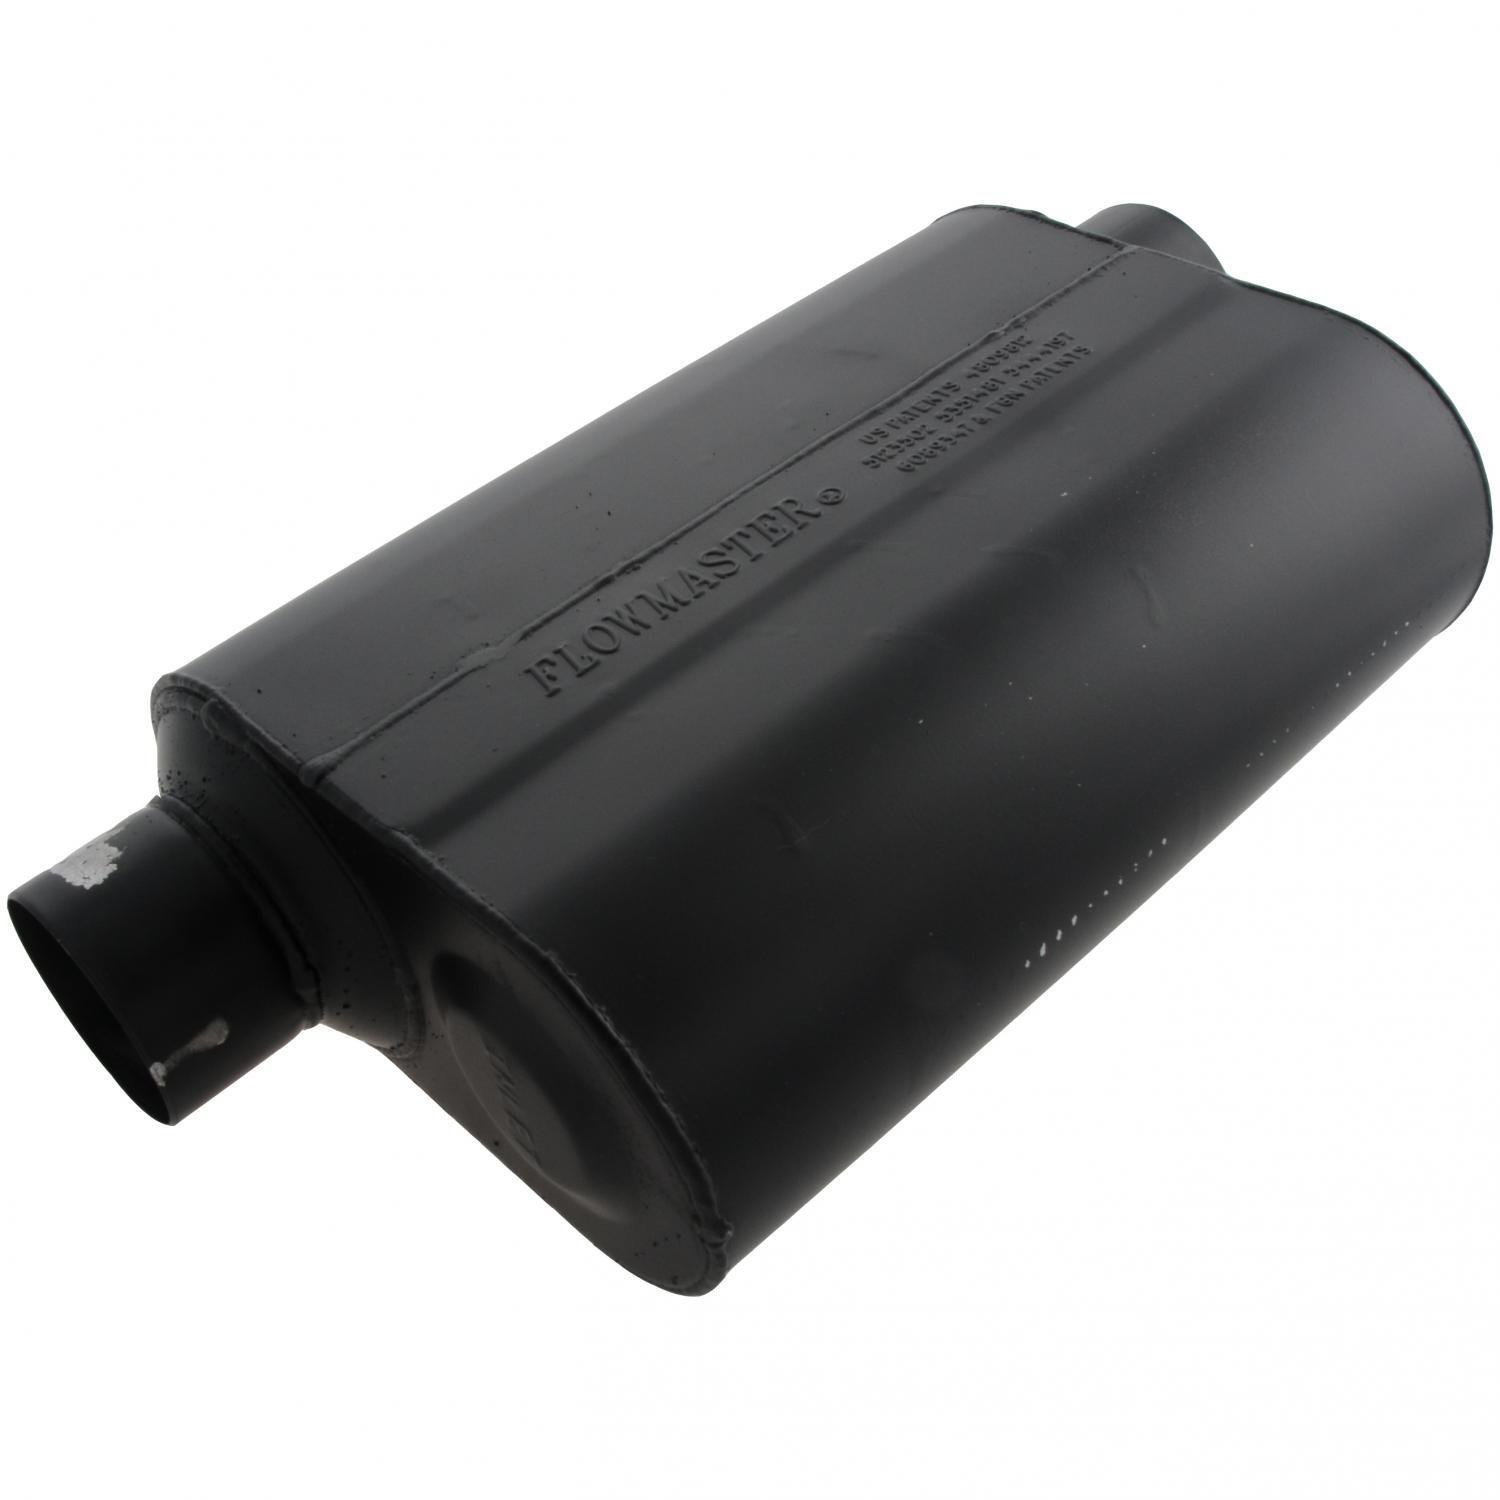 Harley manages to fit all the complex electronics and emissions gear - Amazon Com Flowmaster 953049 Super 40 Muffler 3 00 Offset In 3 00 Same Side Out Aggressive Sound Automotive